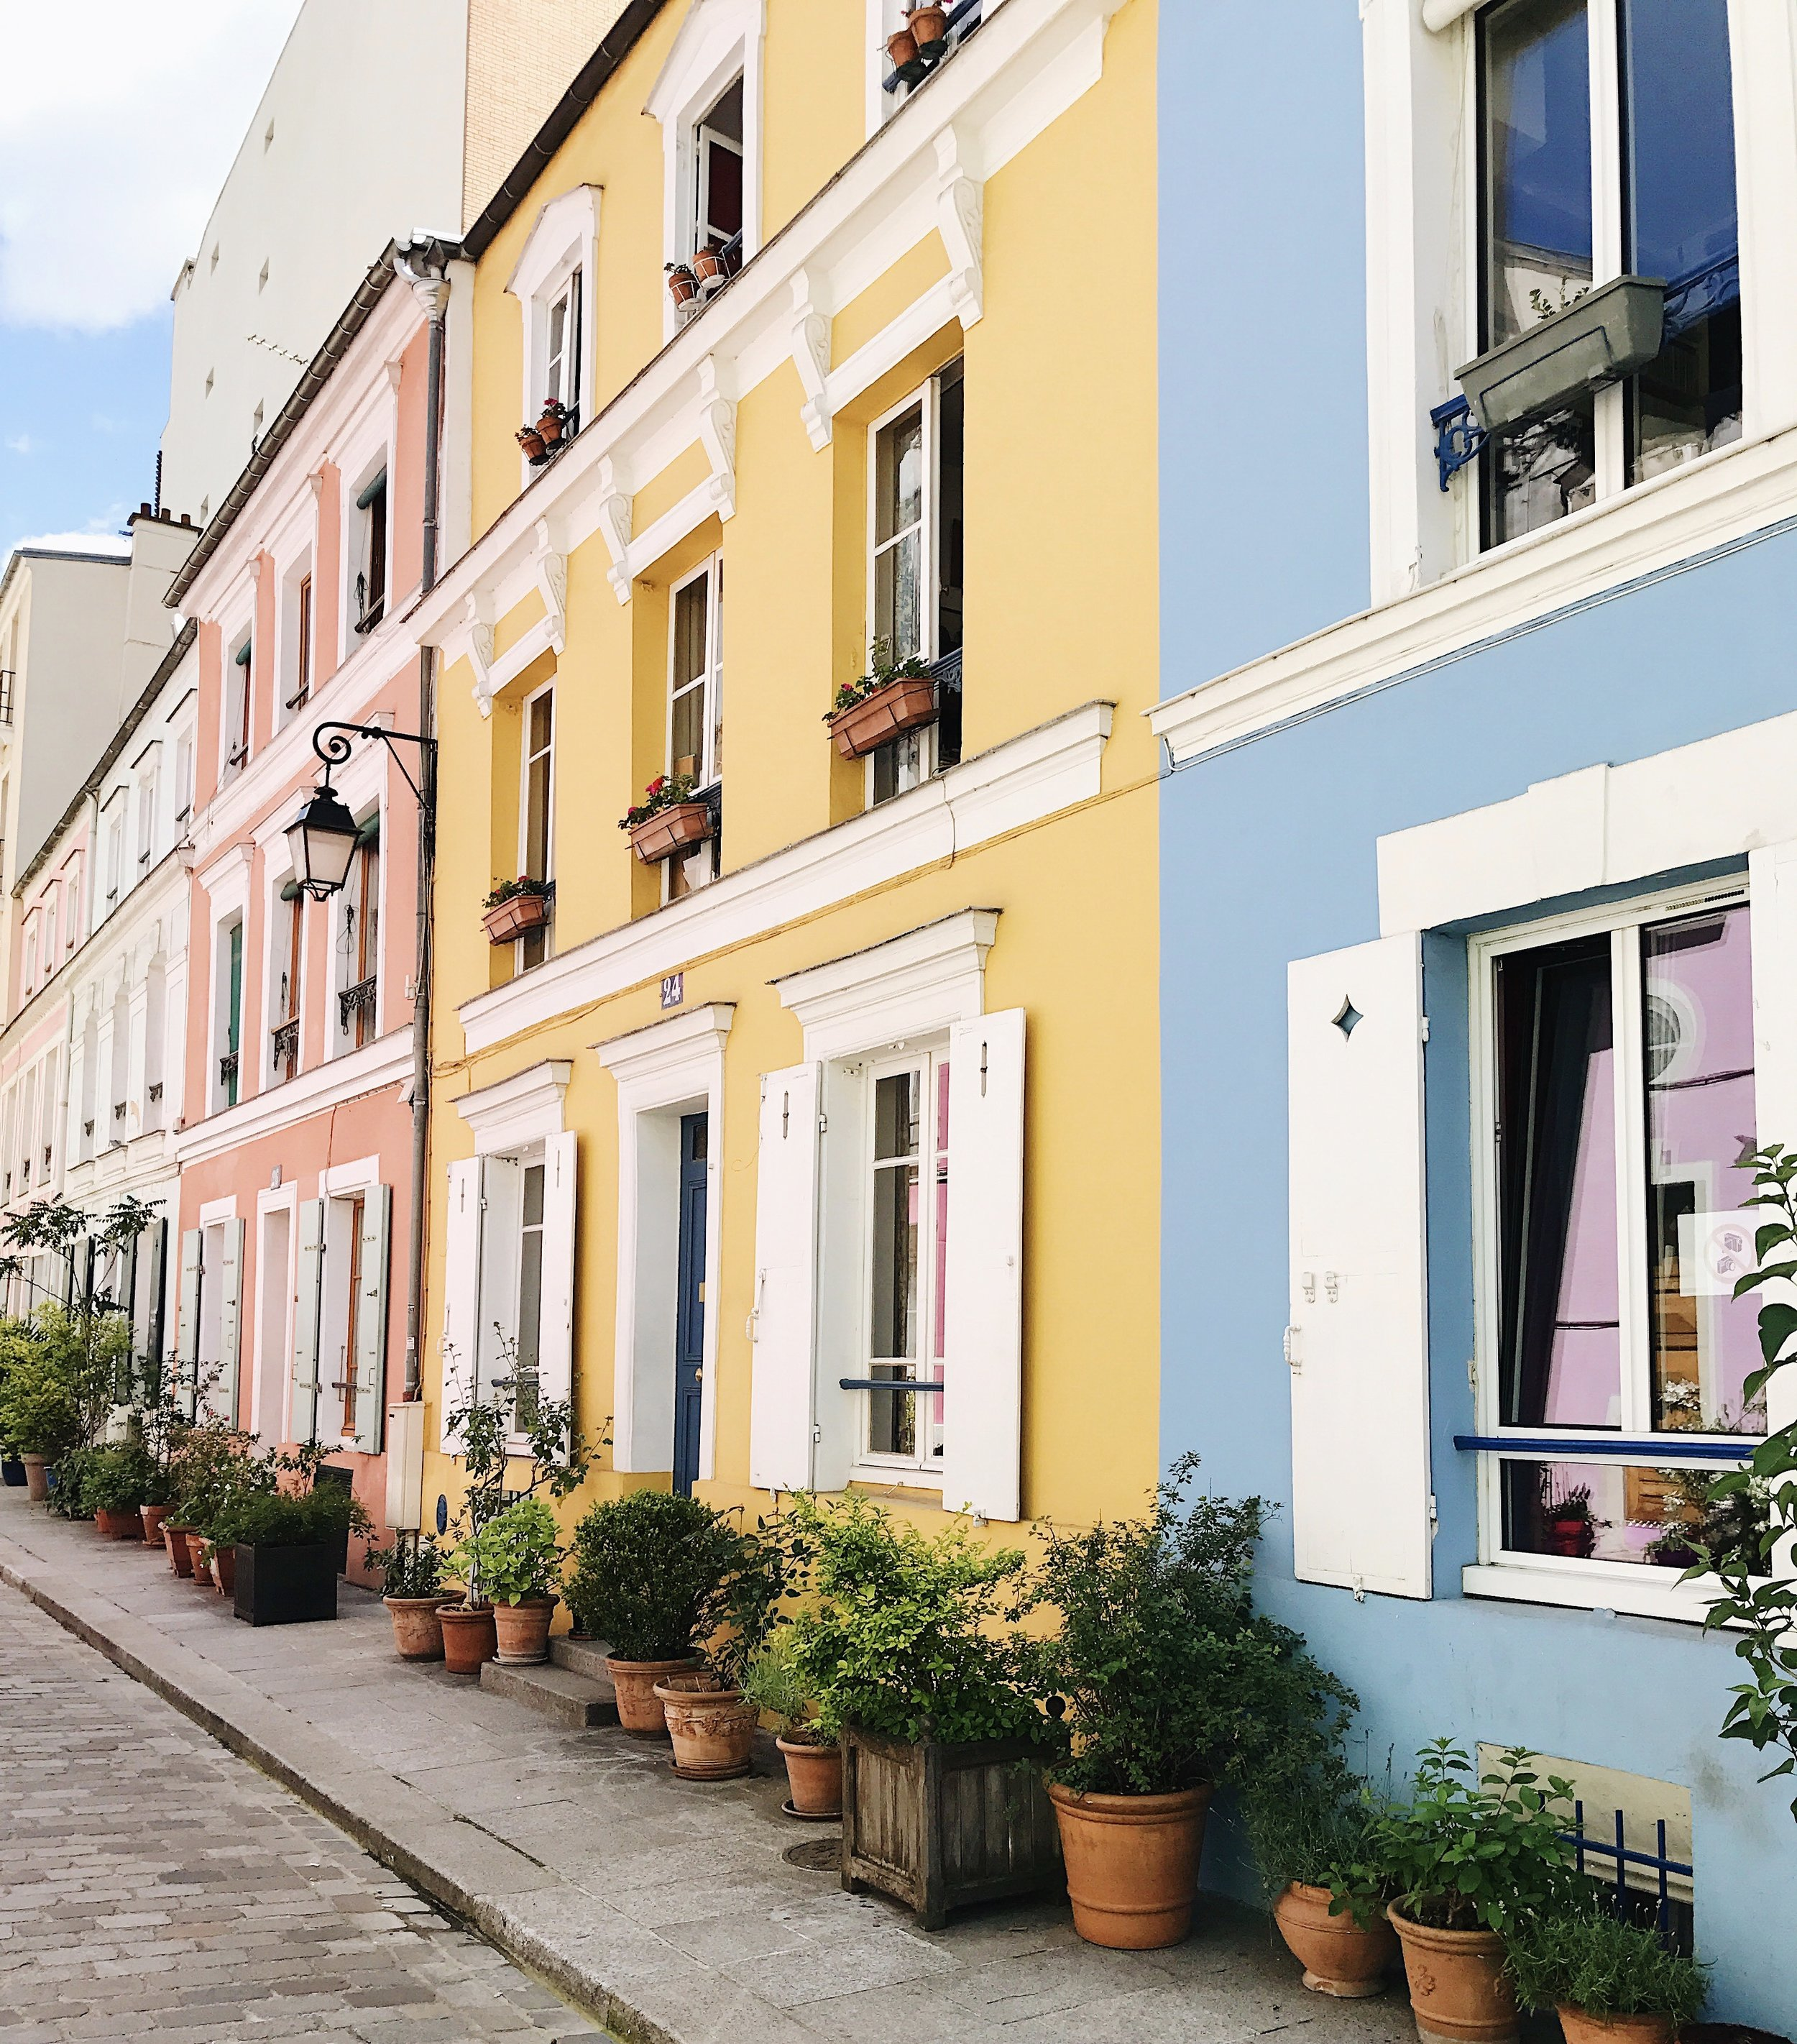 The most colorful street in Paris - Rue Cremieux!